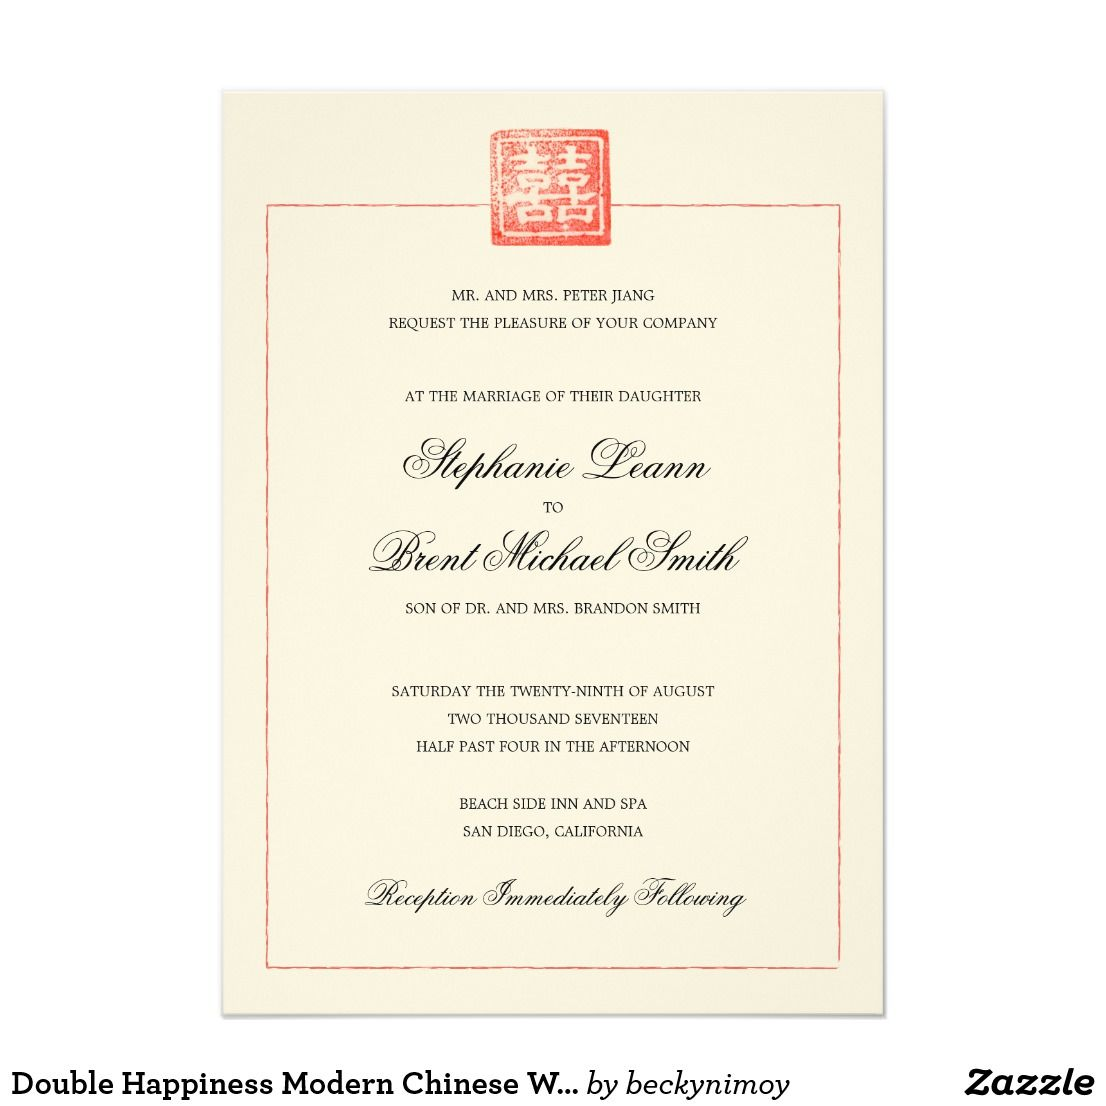 Double happiness modern chinese wedding invitation chinese wedding double happiness modern chinese wedding invitation stopboris Gallery